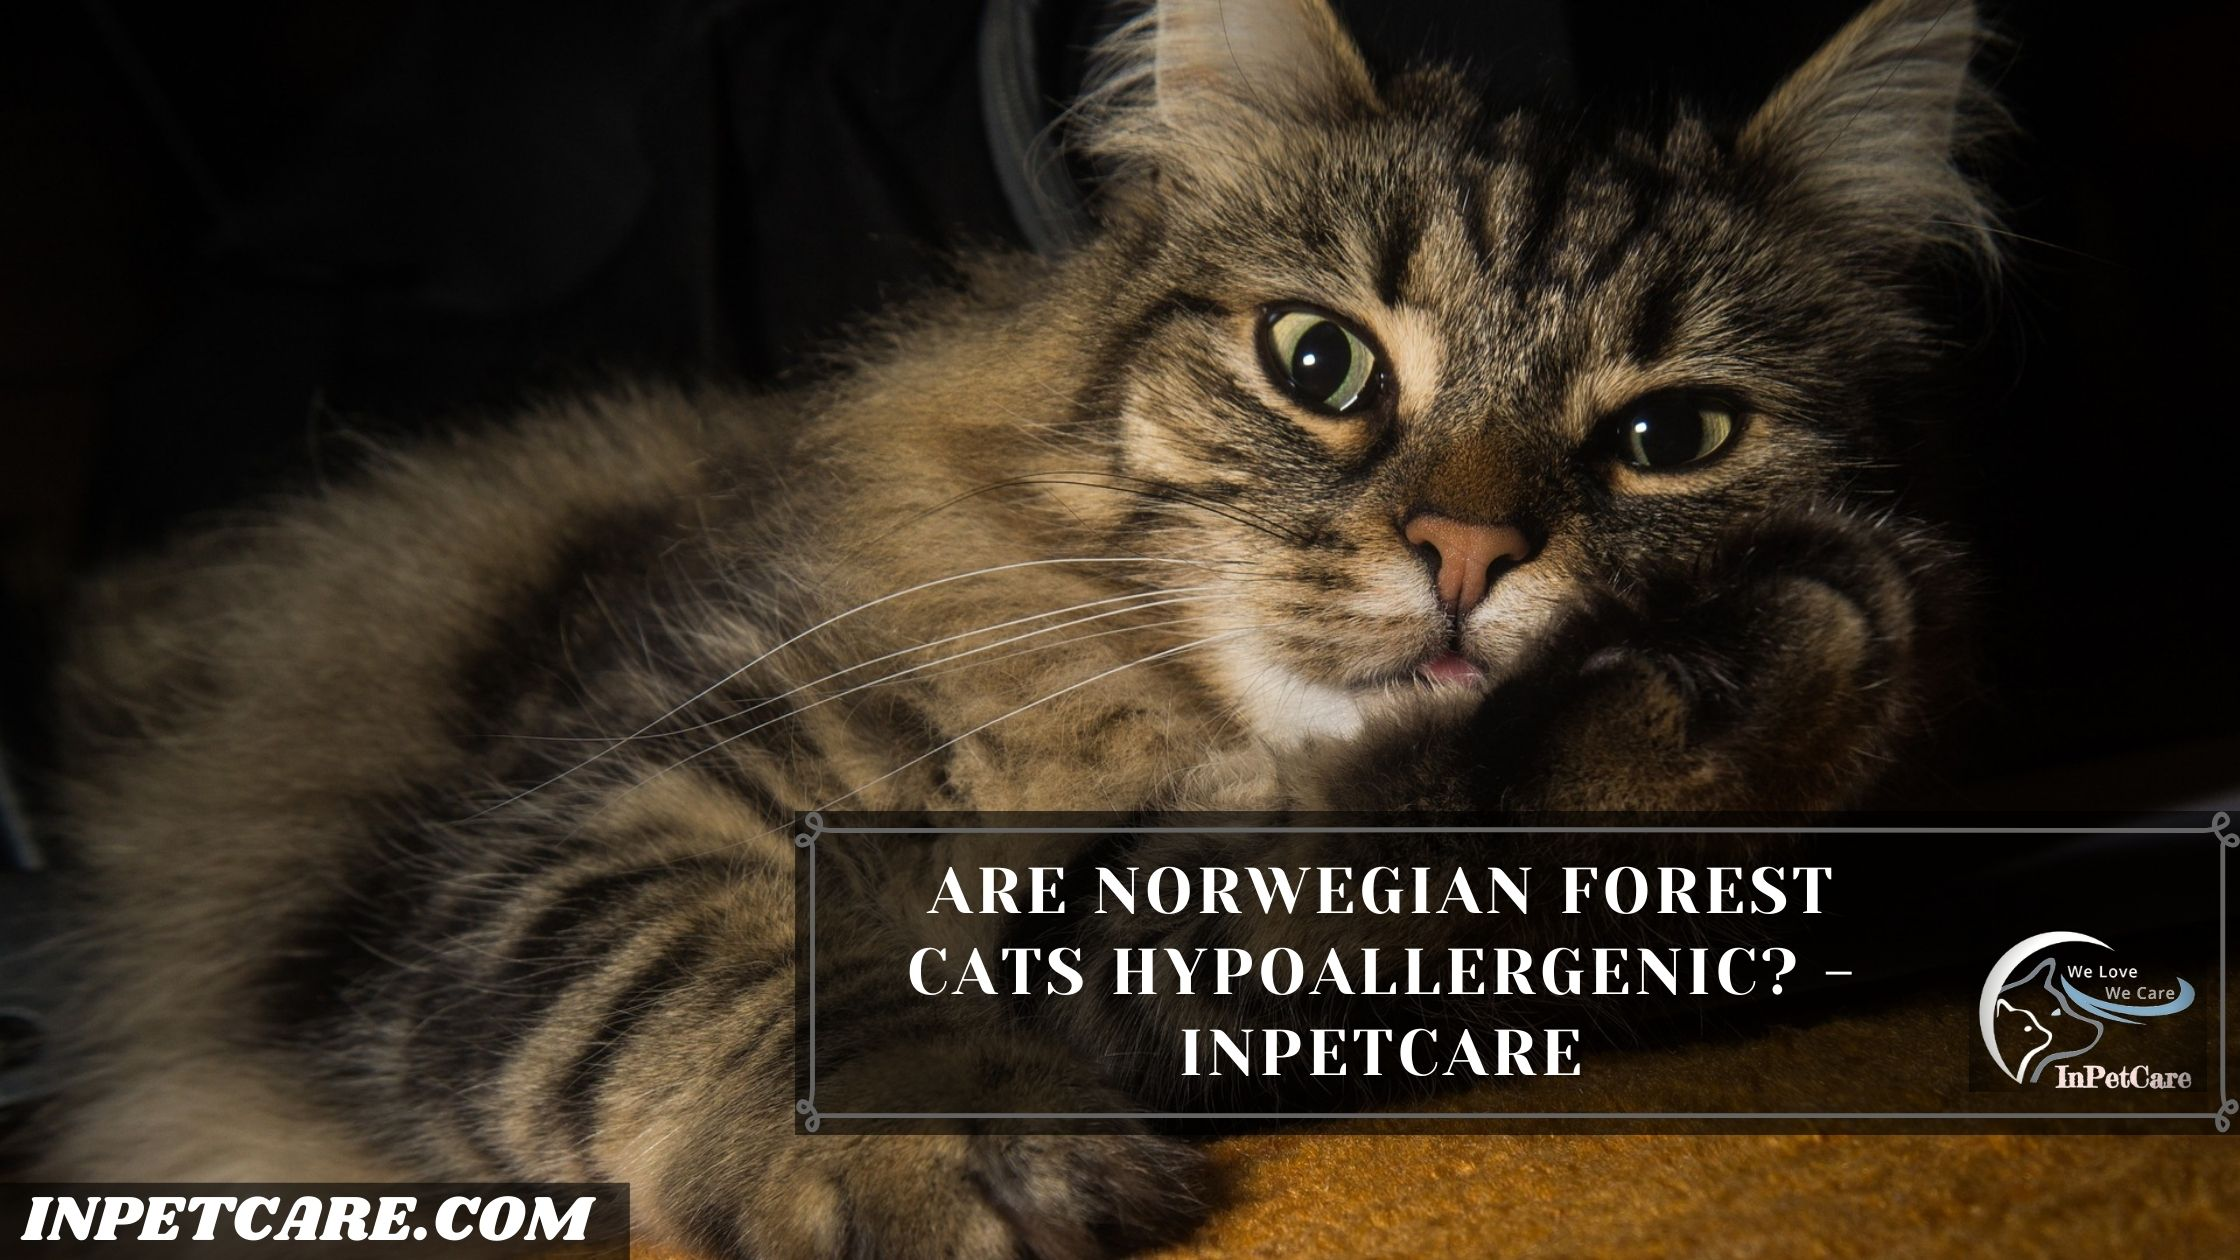 Are Norwegian Forest Cats Hypoallergenic?